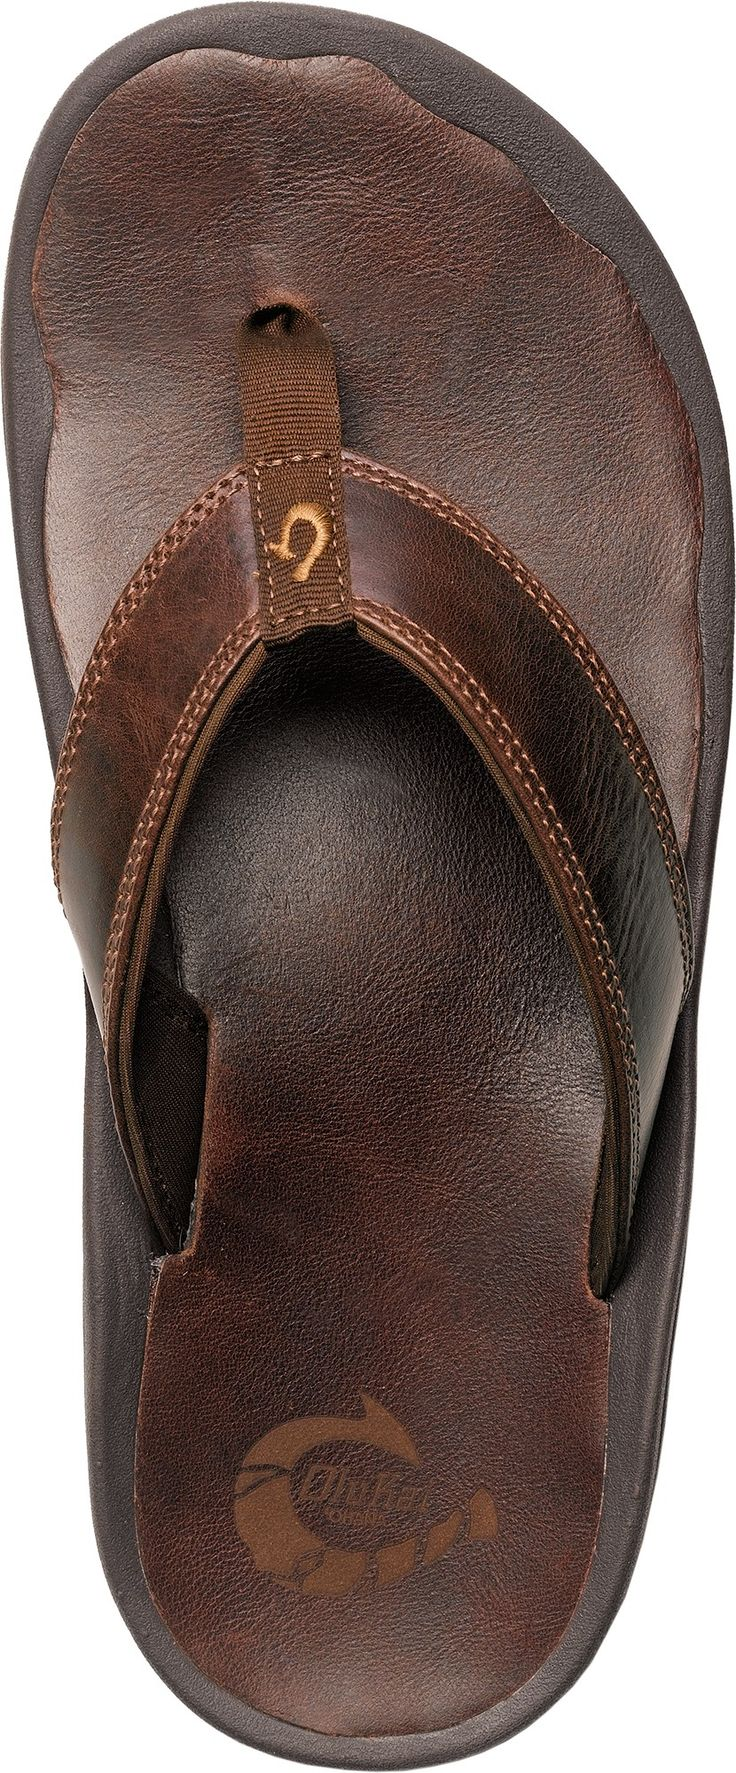 OluKai 'Ohana Leather Flip-Flops - Men's - Free Shipping at REI.com